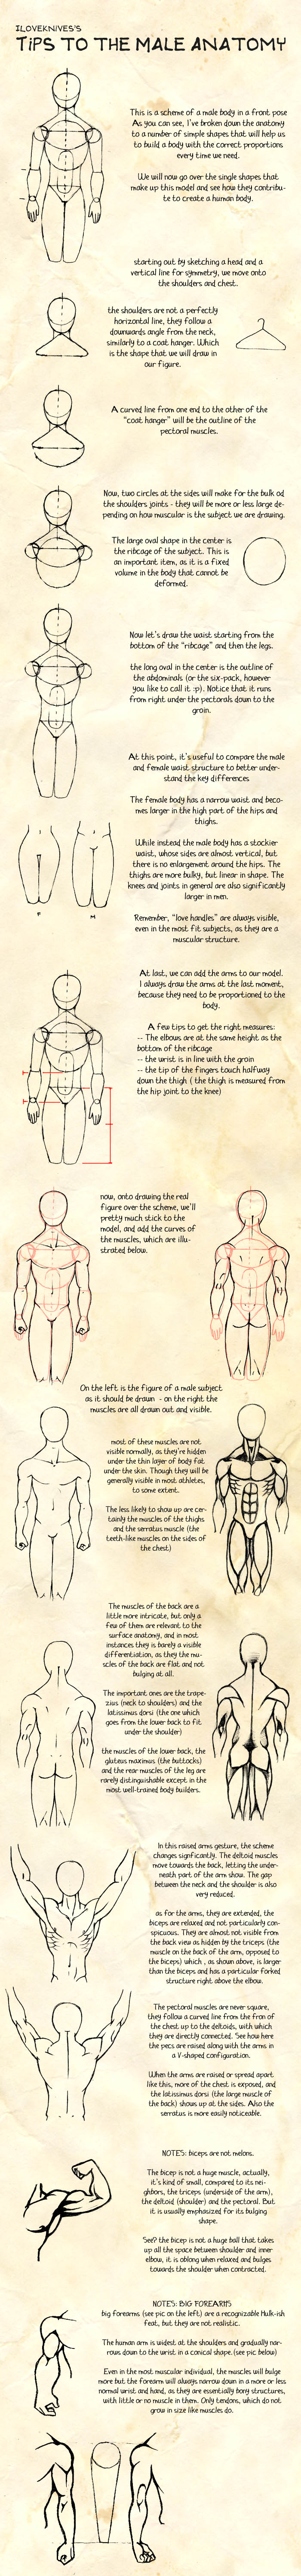 tips - male anatomy by ILoveKnives